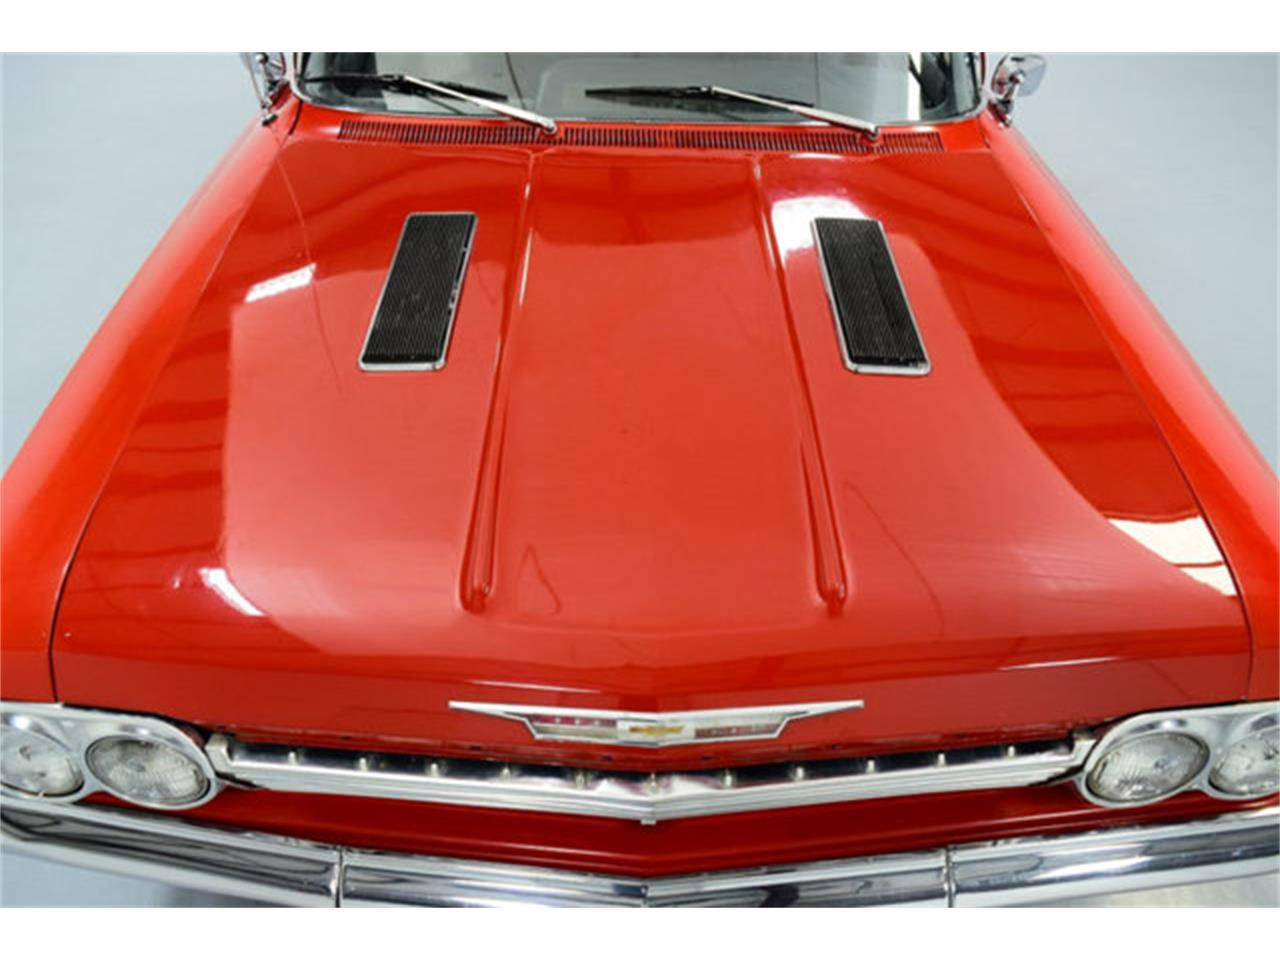 Large Picture of Classic 1962 Chevrolet Biscayne located in North Carolina Offered by Shelton Classics & Performance - L7HW